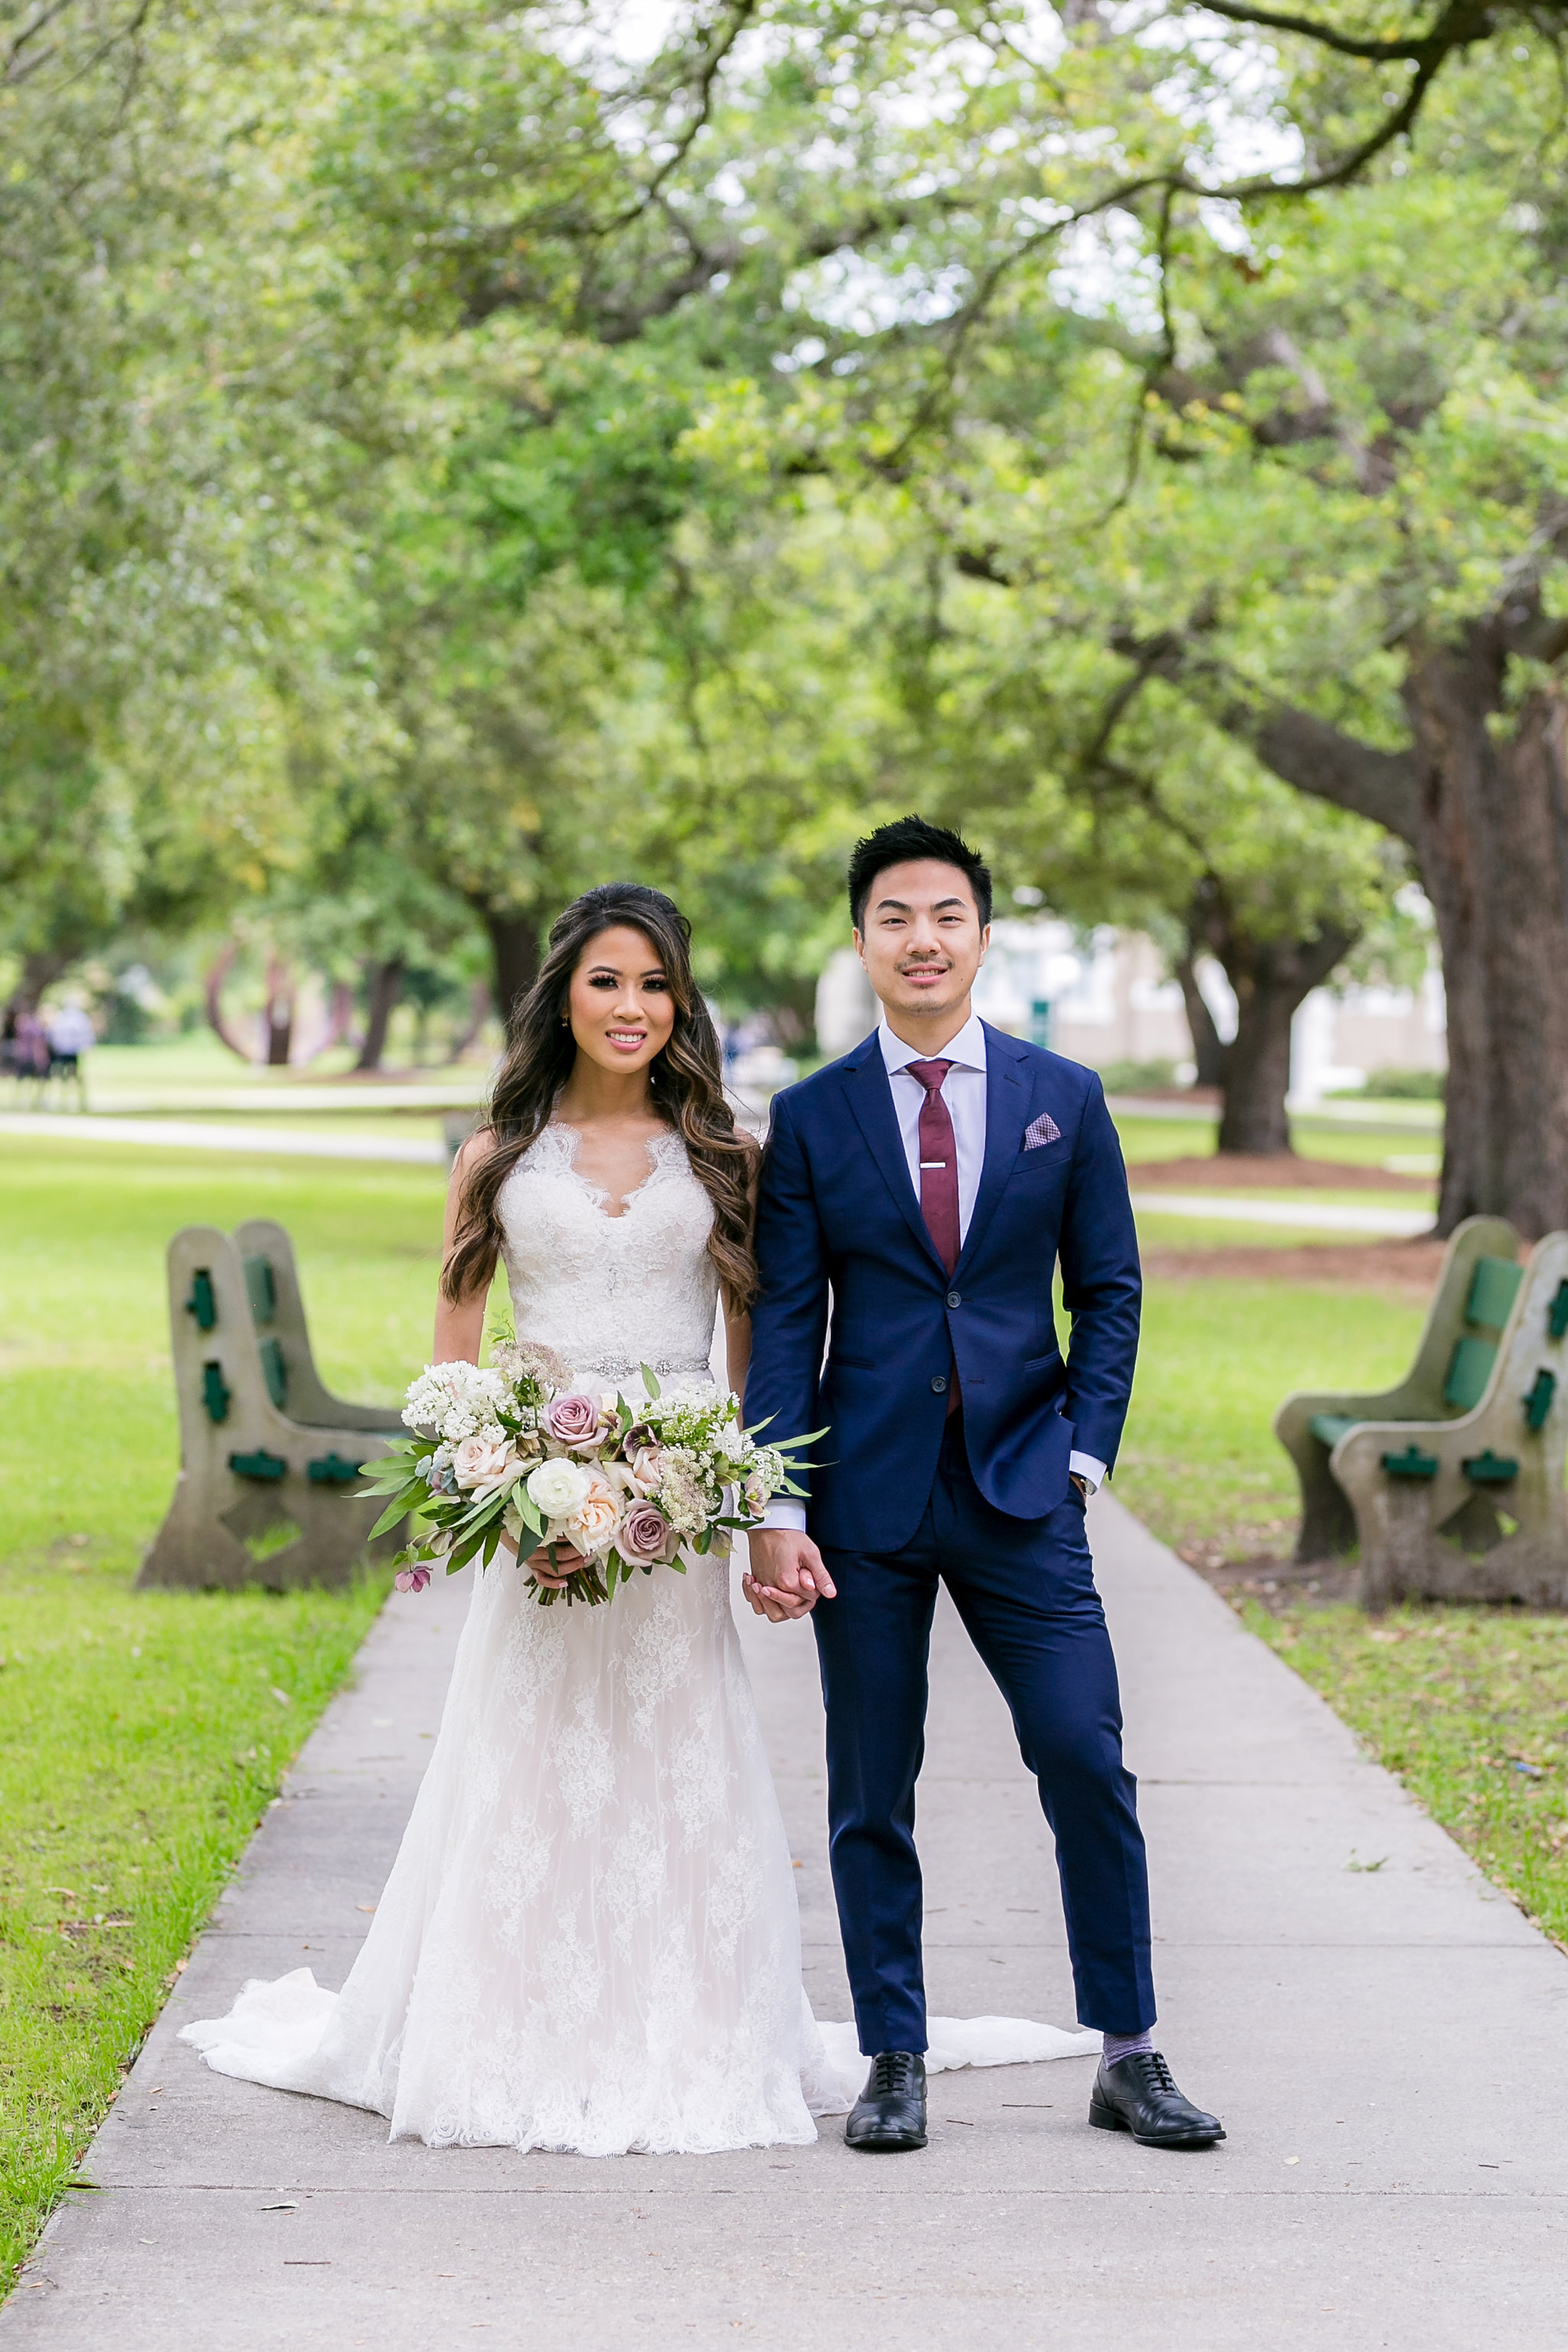 New Orleans Wedding Photography Destination David Kim-7.jpg